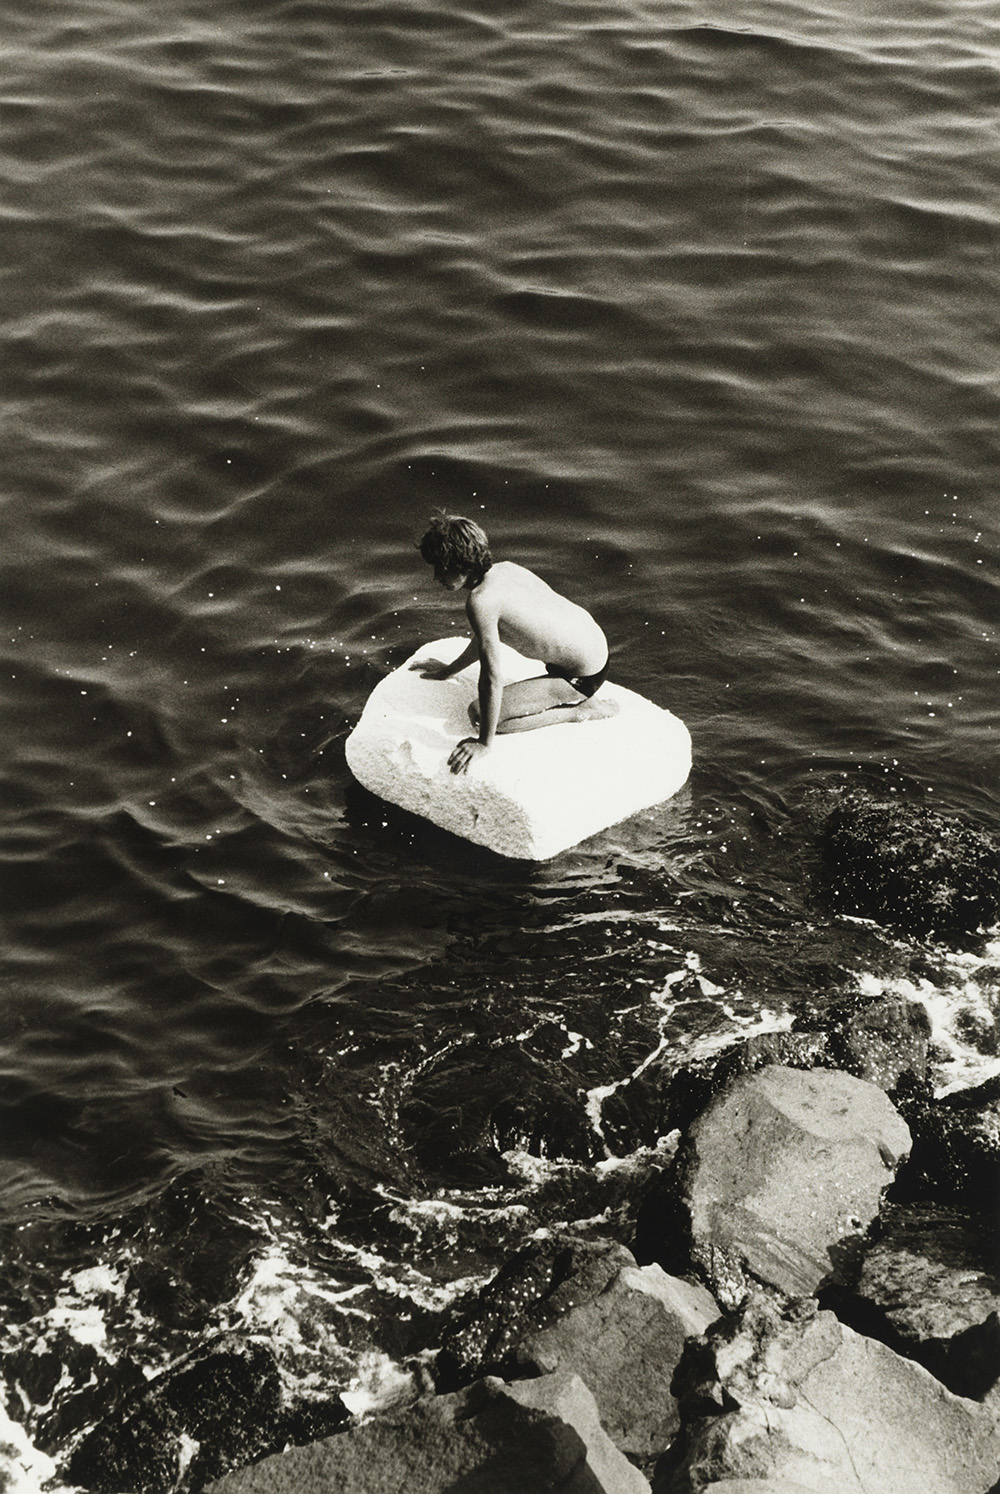 Boy On Raft (1978) © Peter Hujar Archive, LLC, courtesy Pace/MacGill Gallery, New York and Fraenkel Gallery, San Francisco